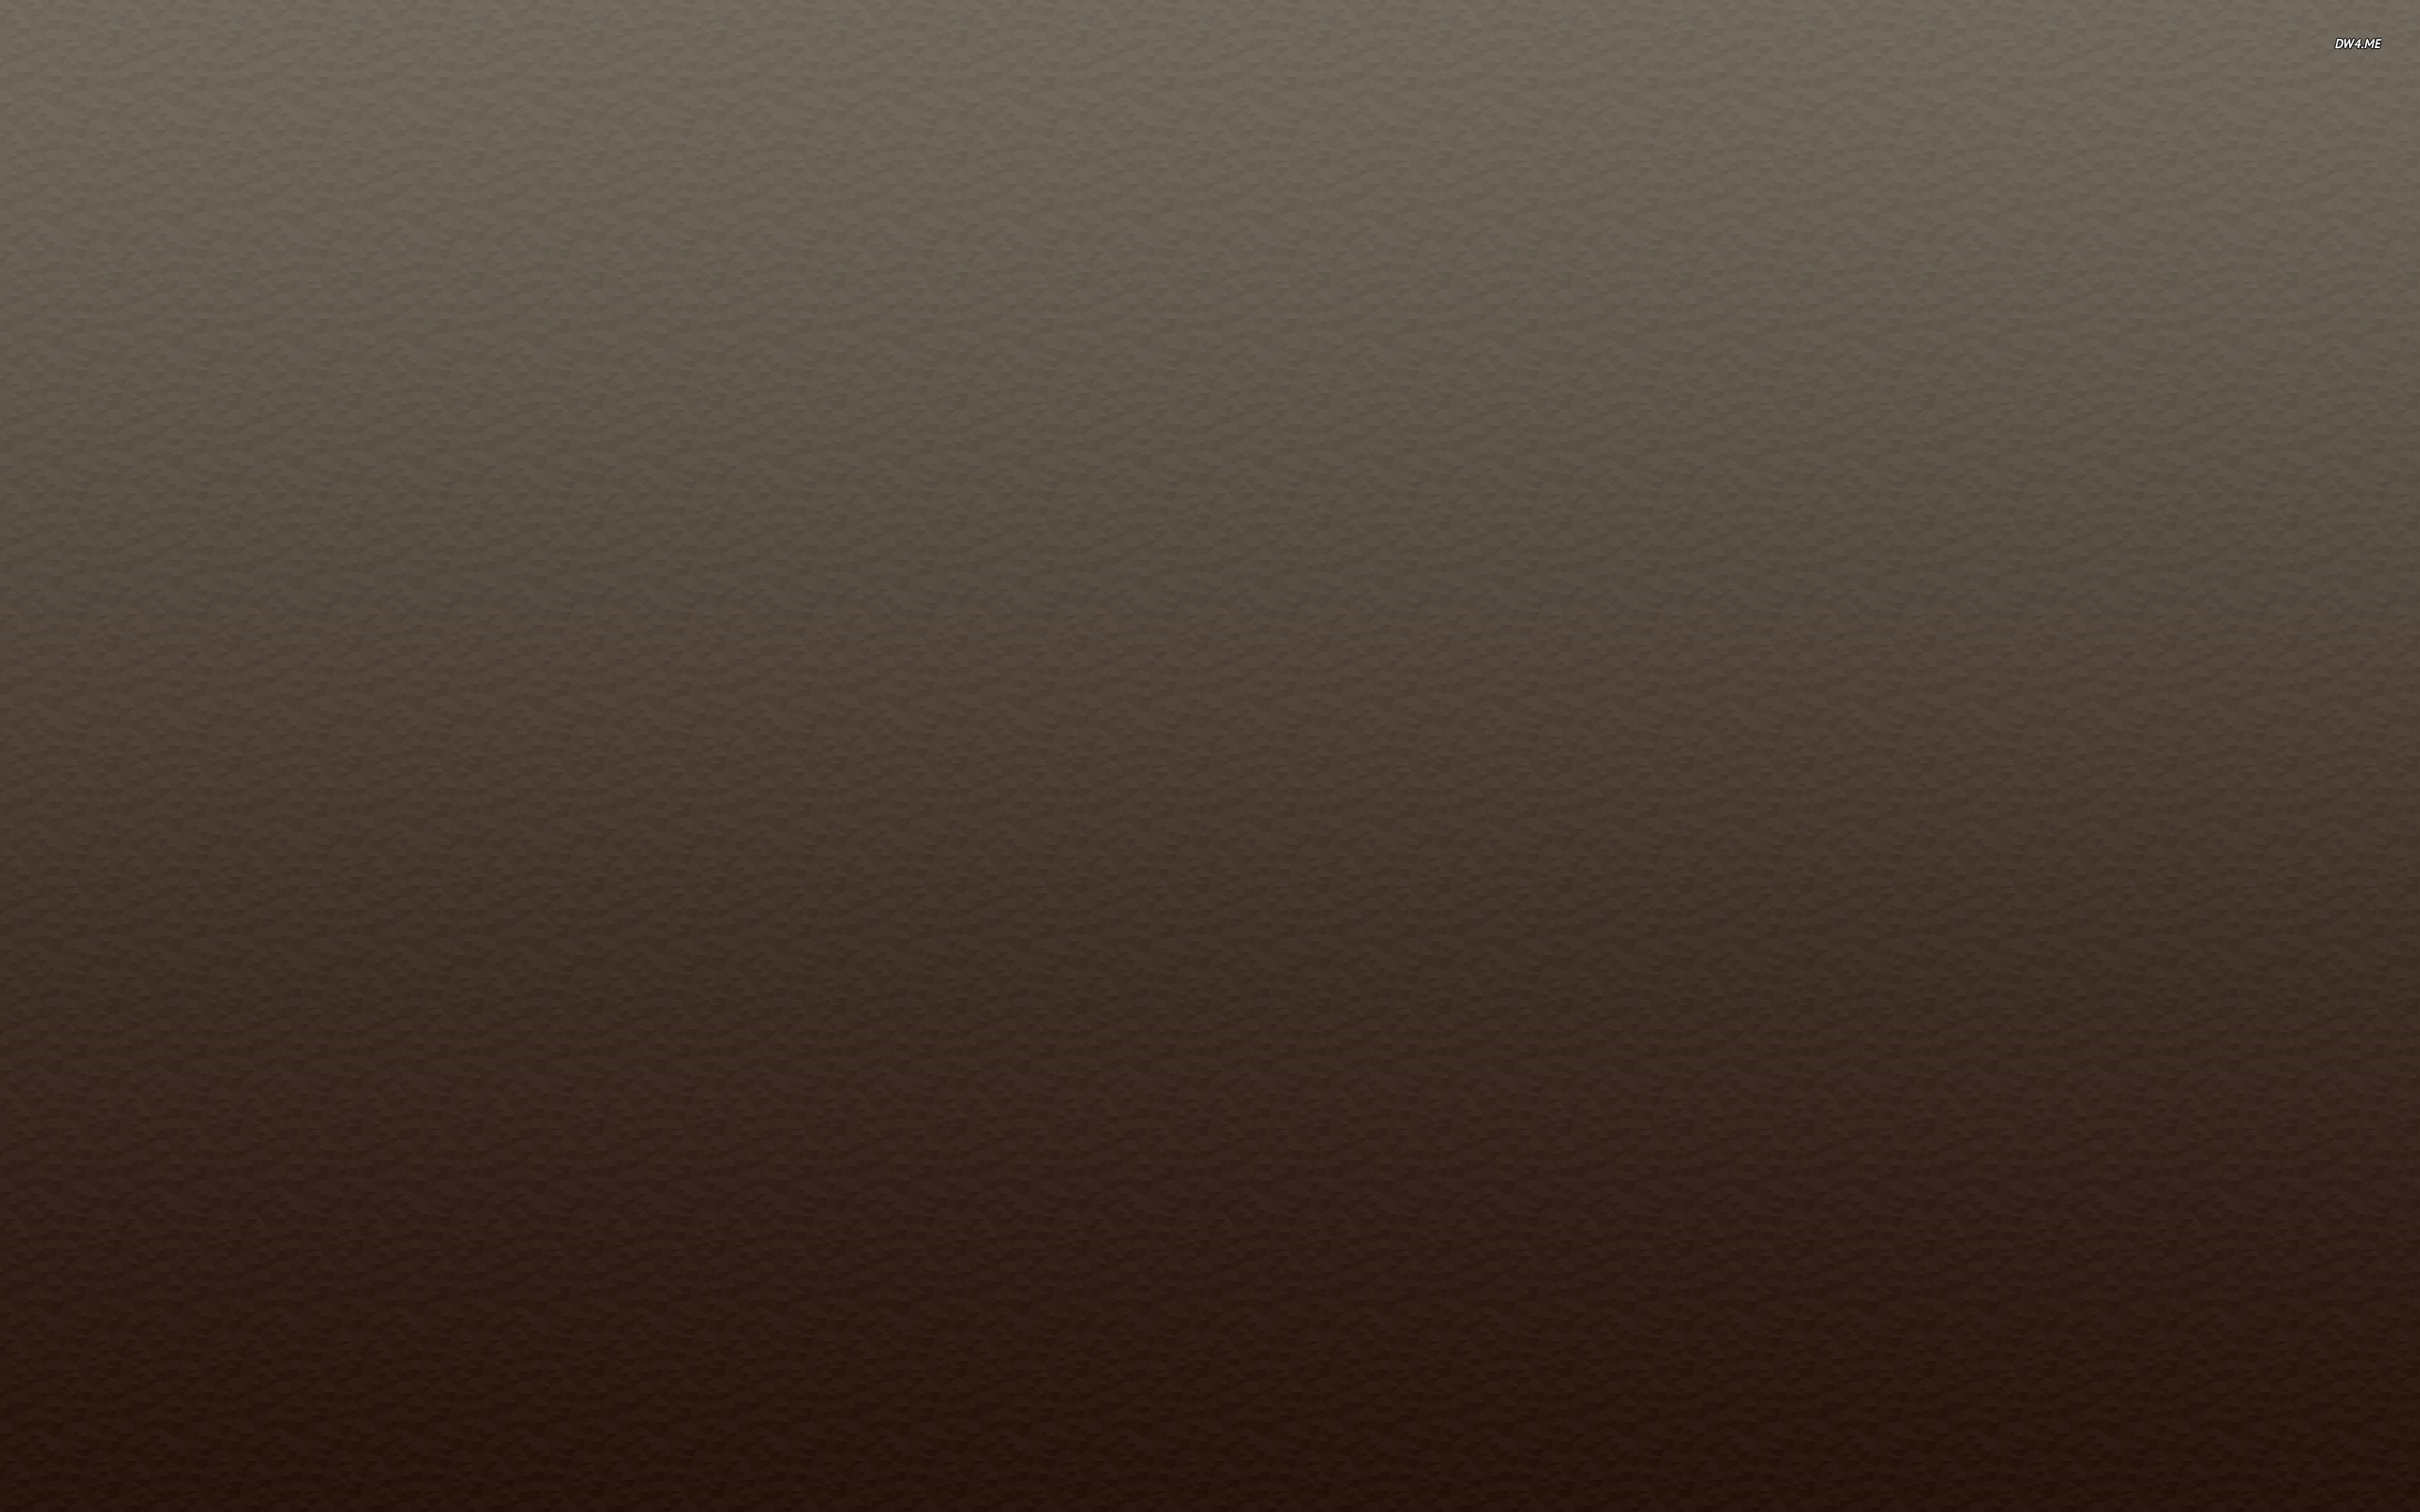 2560x1600 Brown leather wallpaper - Minimalistic wallpapers - #170